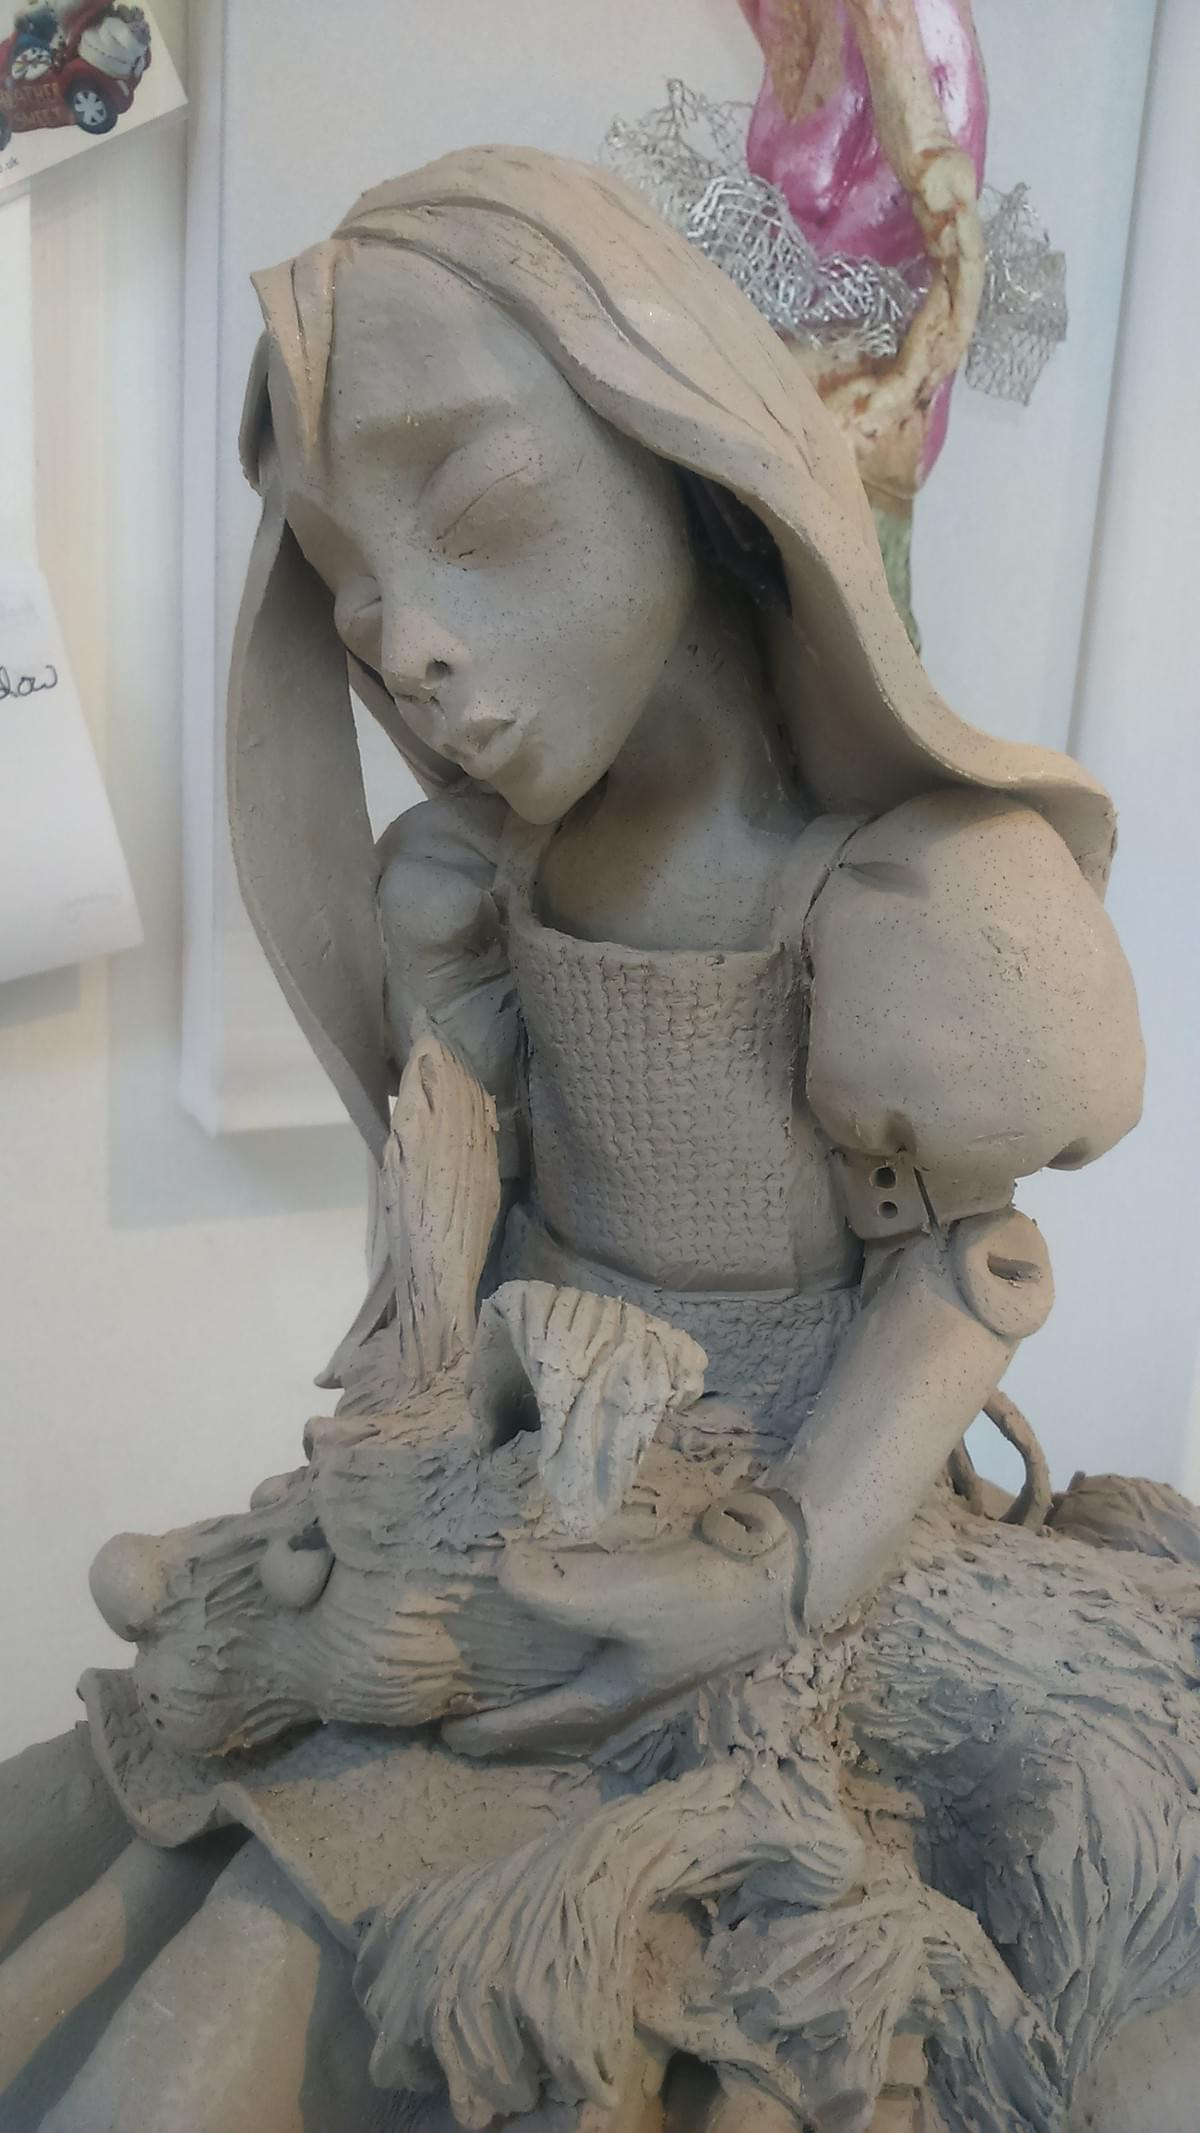 Girl with rabbit, clay sculpture by Heather Sweet-Moon